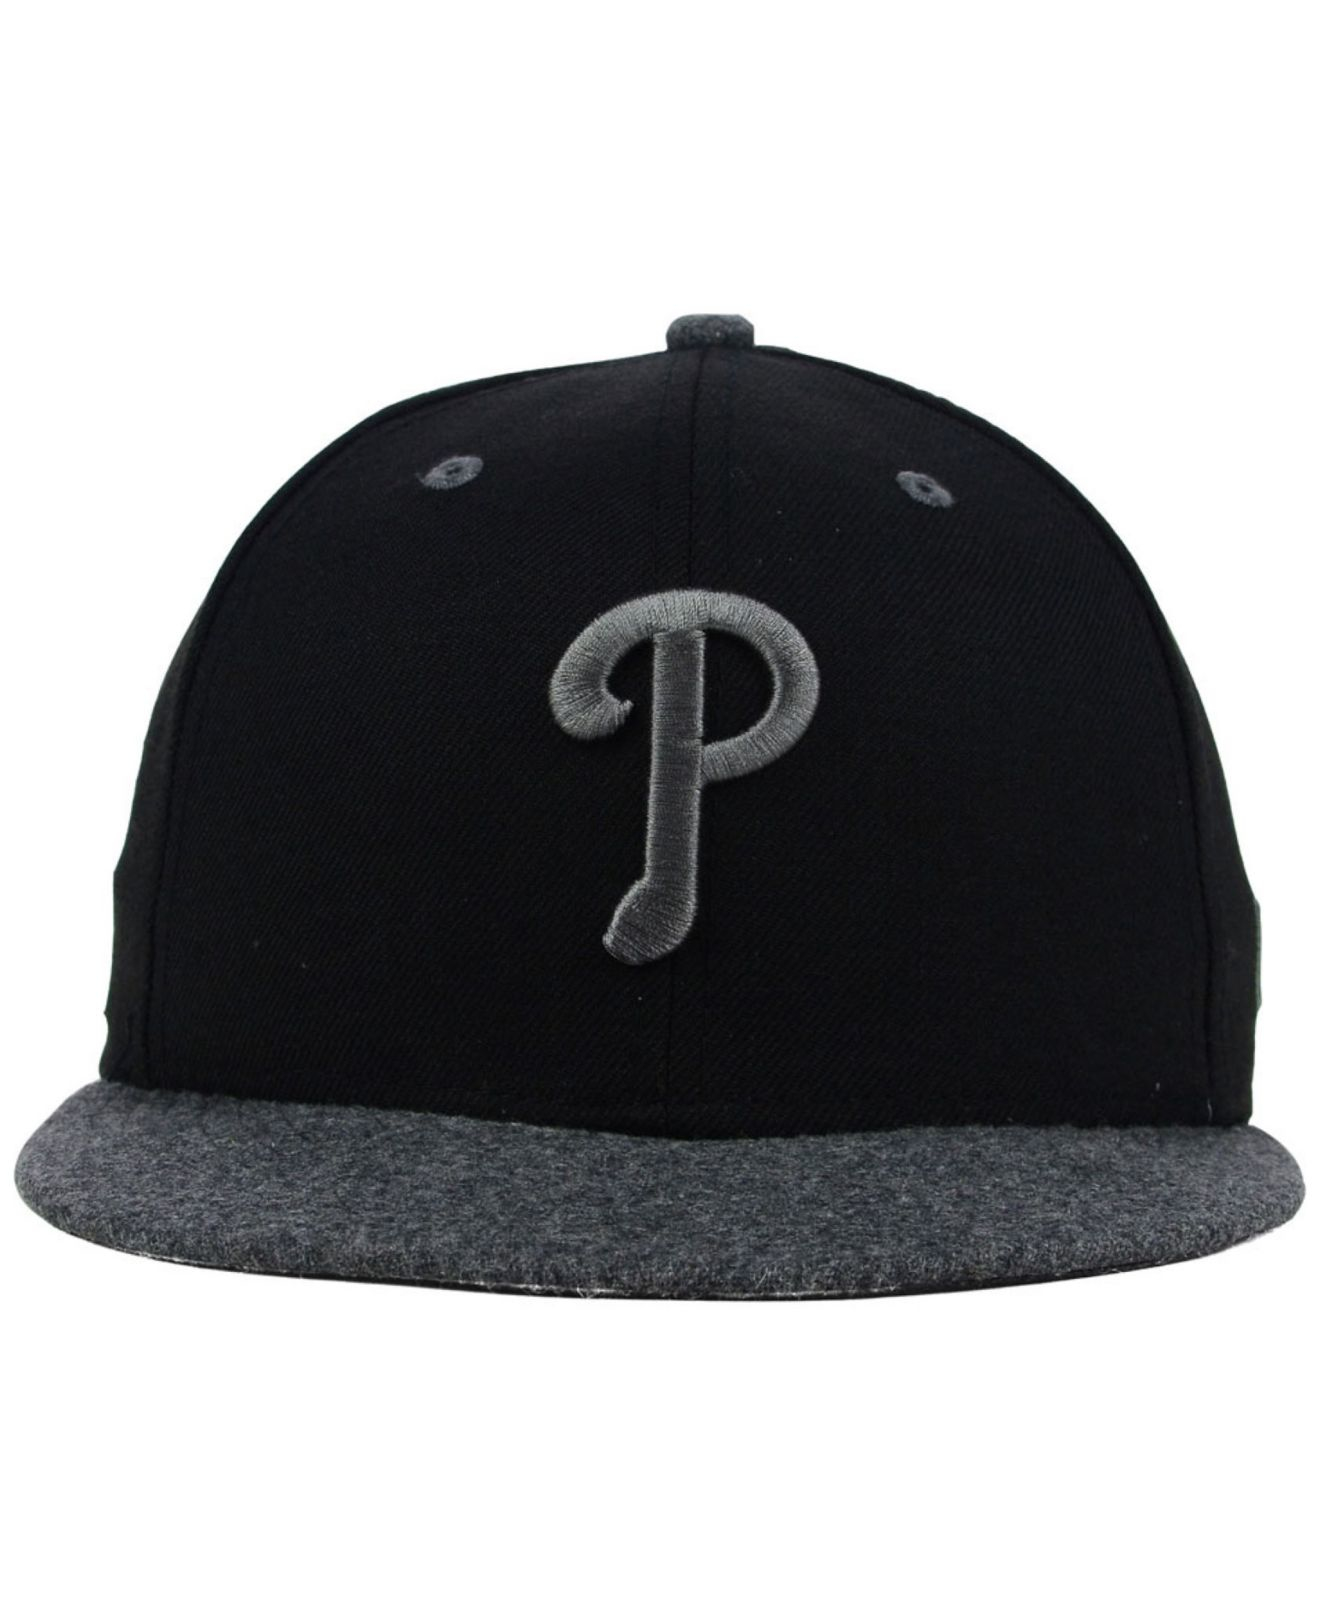 ... sale lyst ktz philadelphia phillies g wooly 59fifty cap in black for men  4849f 1948a 8fbeb1c46eb1